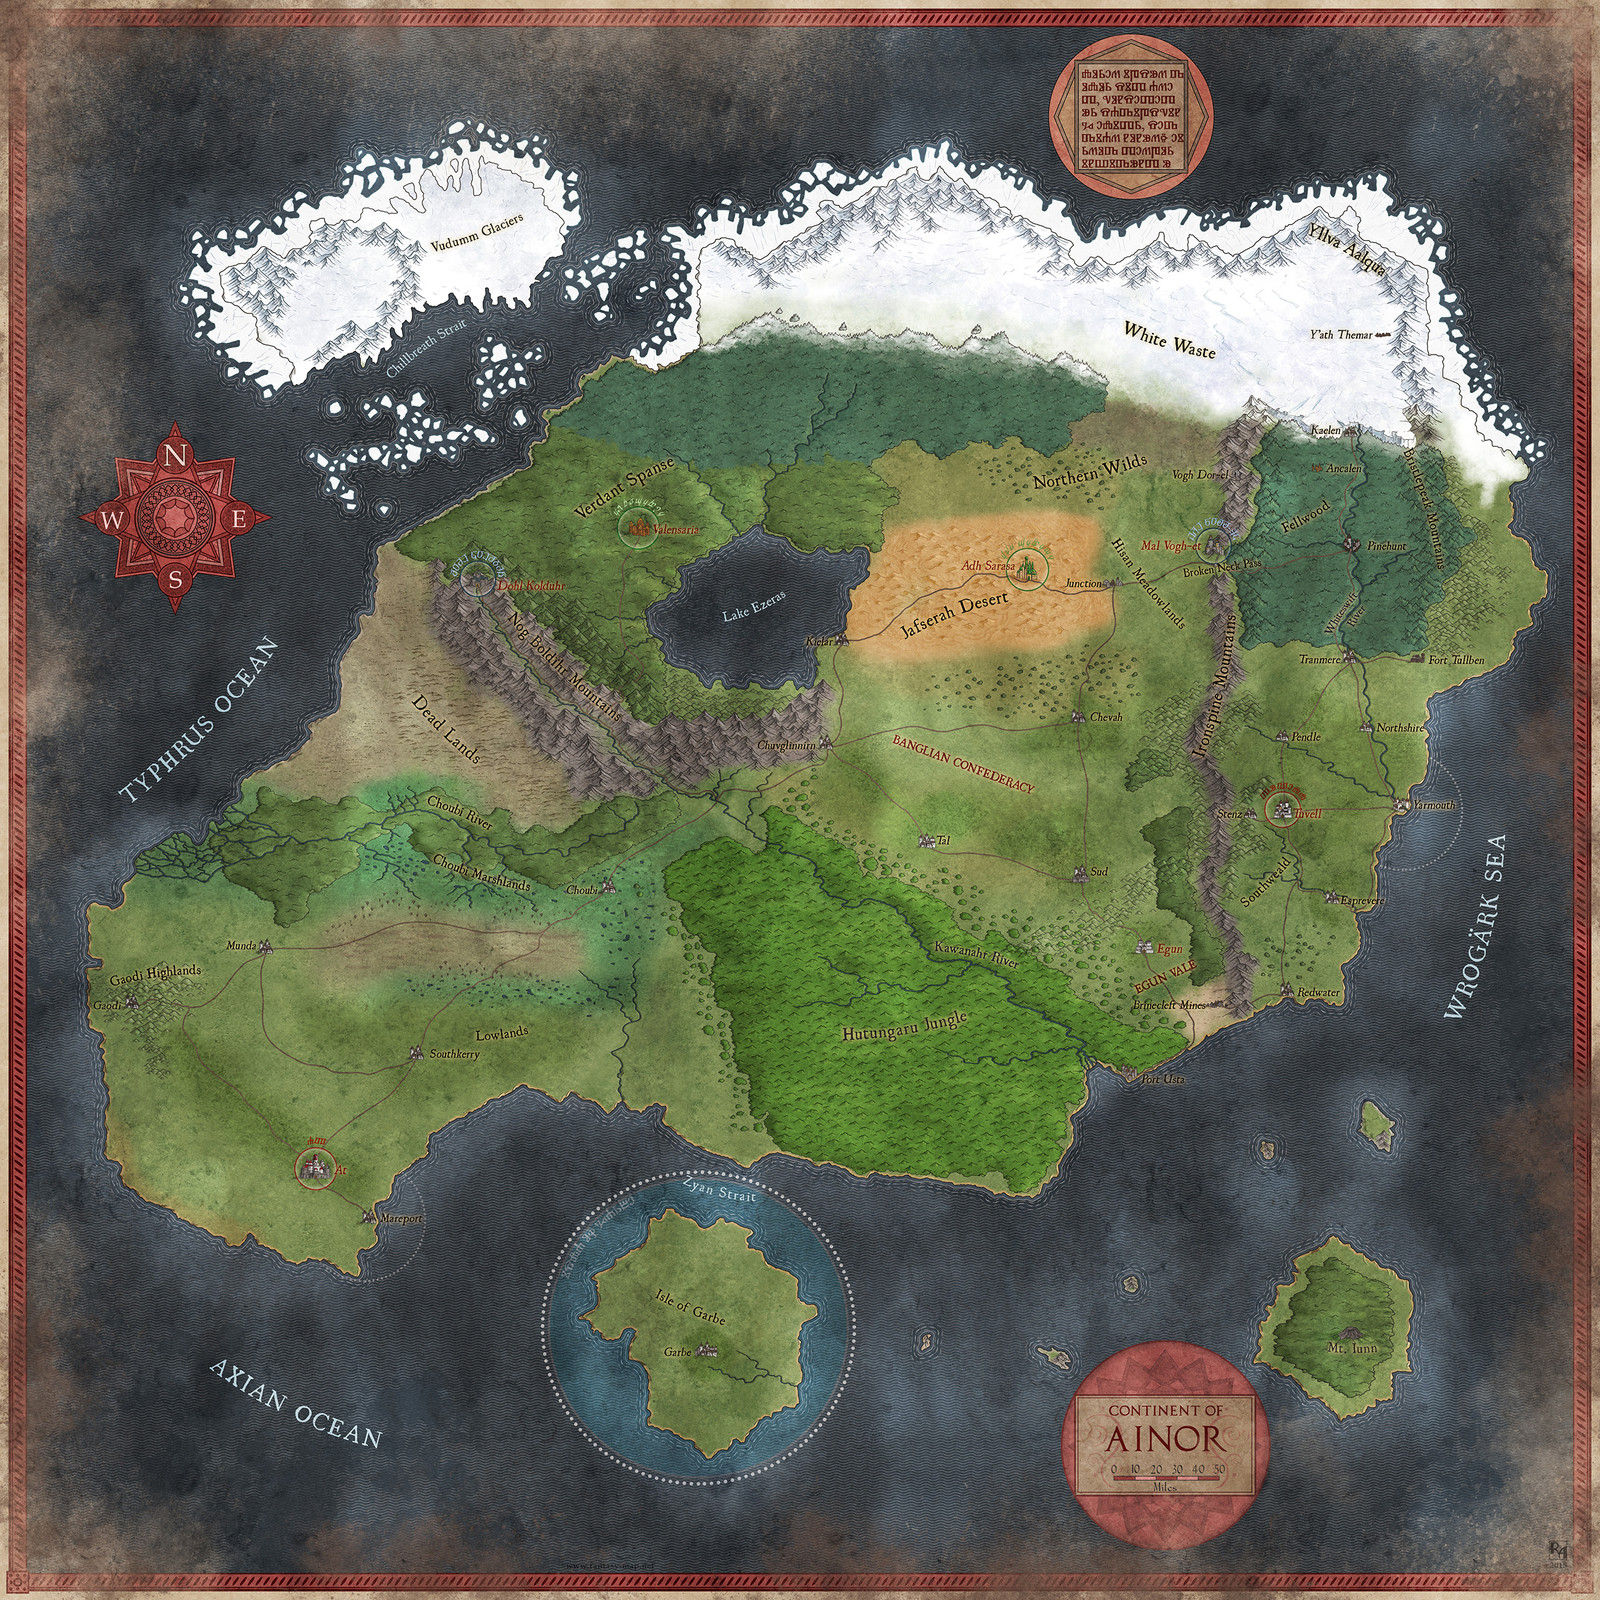 Continent of Ainor